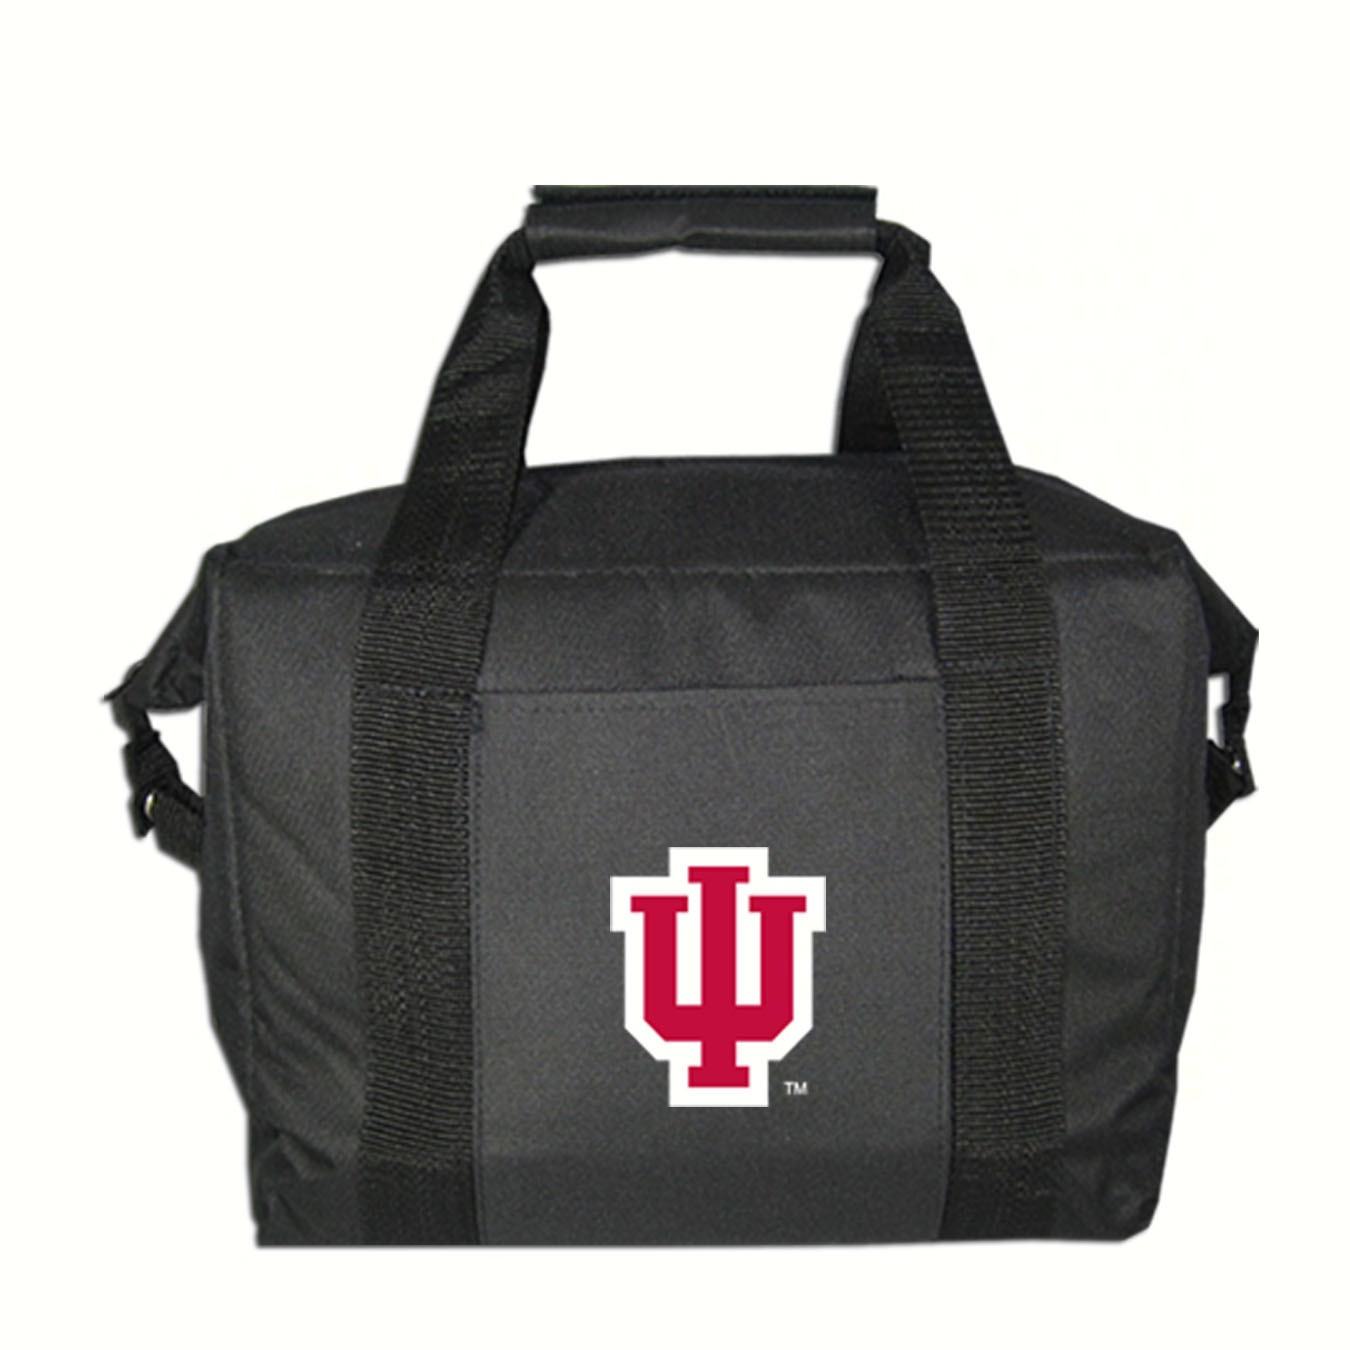 Kooler Bag - Indiana Hooisers (Holds a 12 pack)